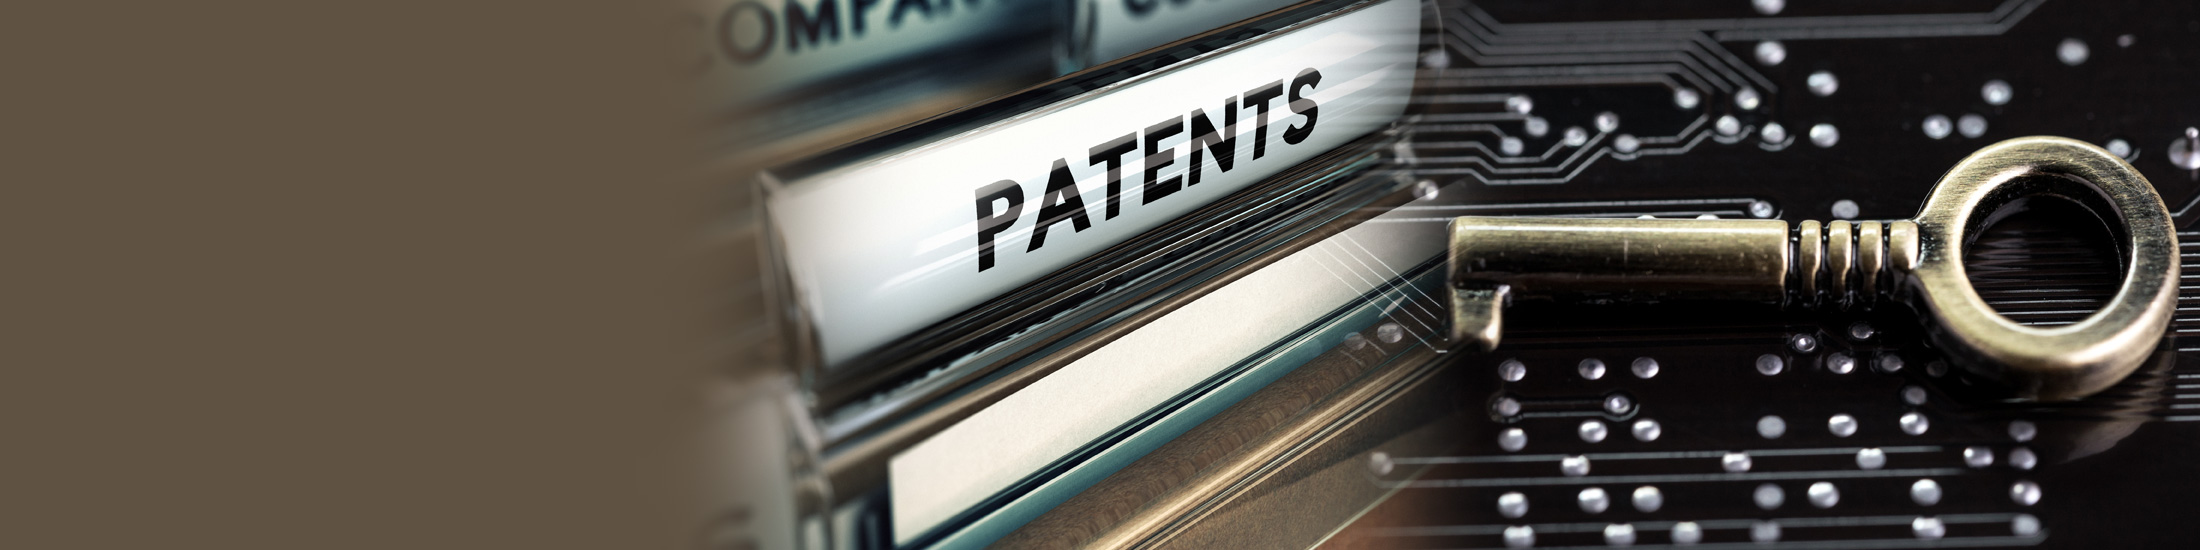 Featurespace Seeks Patents on Antifraud Technology